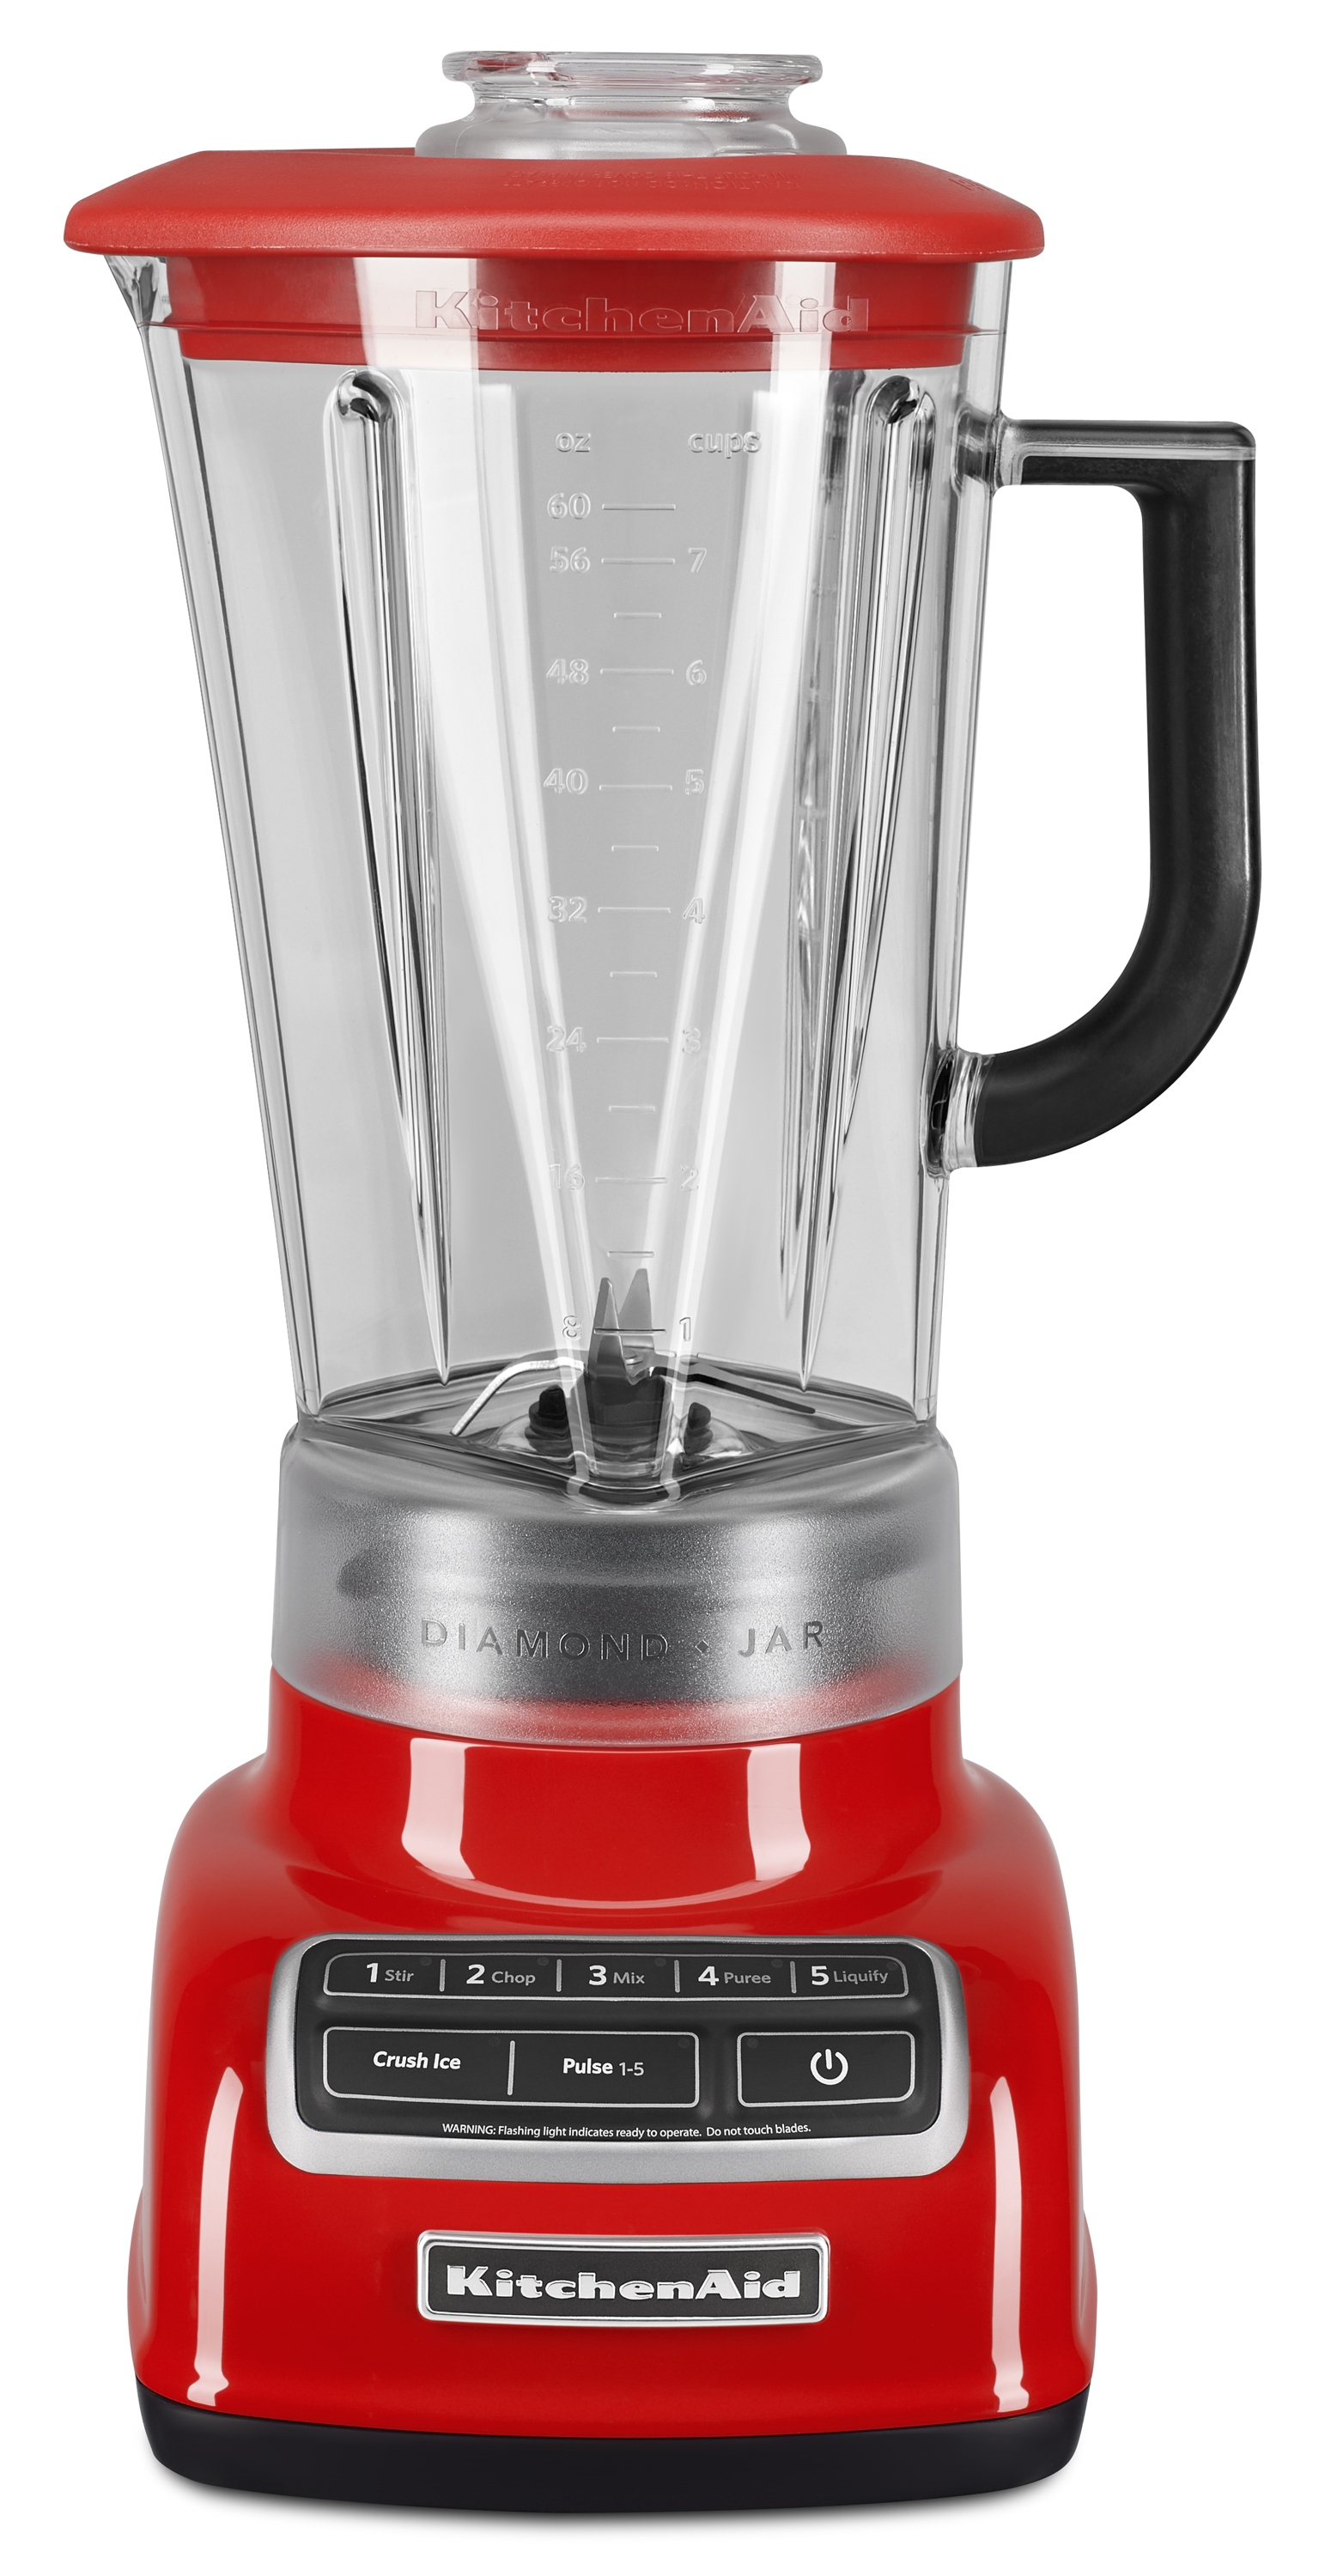 KitchenAid® 5-Speed Diamond Blender, Hot Sauce (KSB1575HT) - Walmart.com